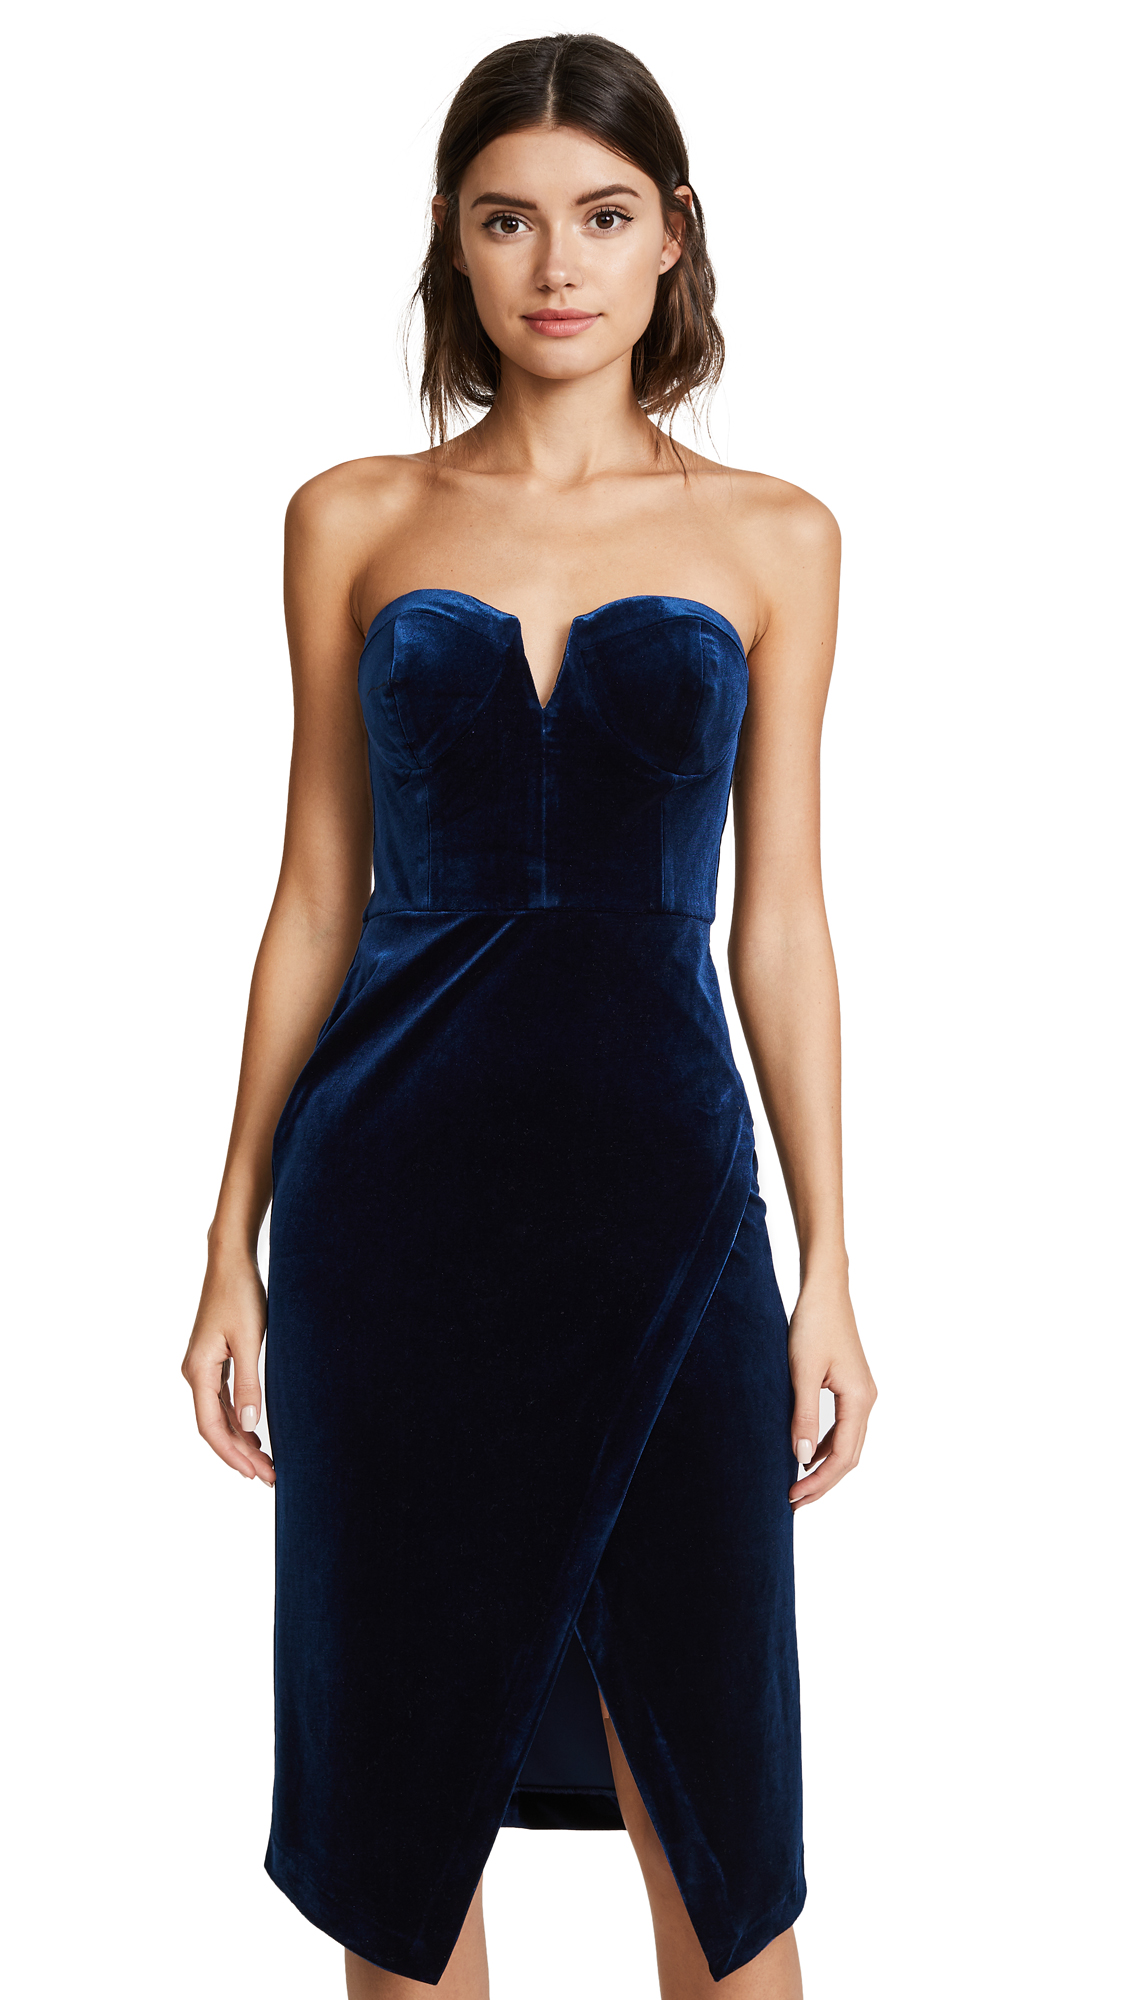 Yumi Kim Velour Allure Dress - 50% Off Sale